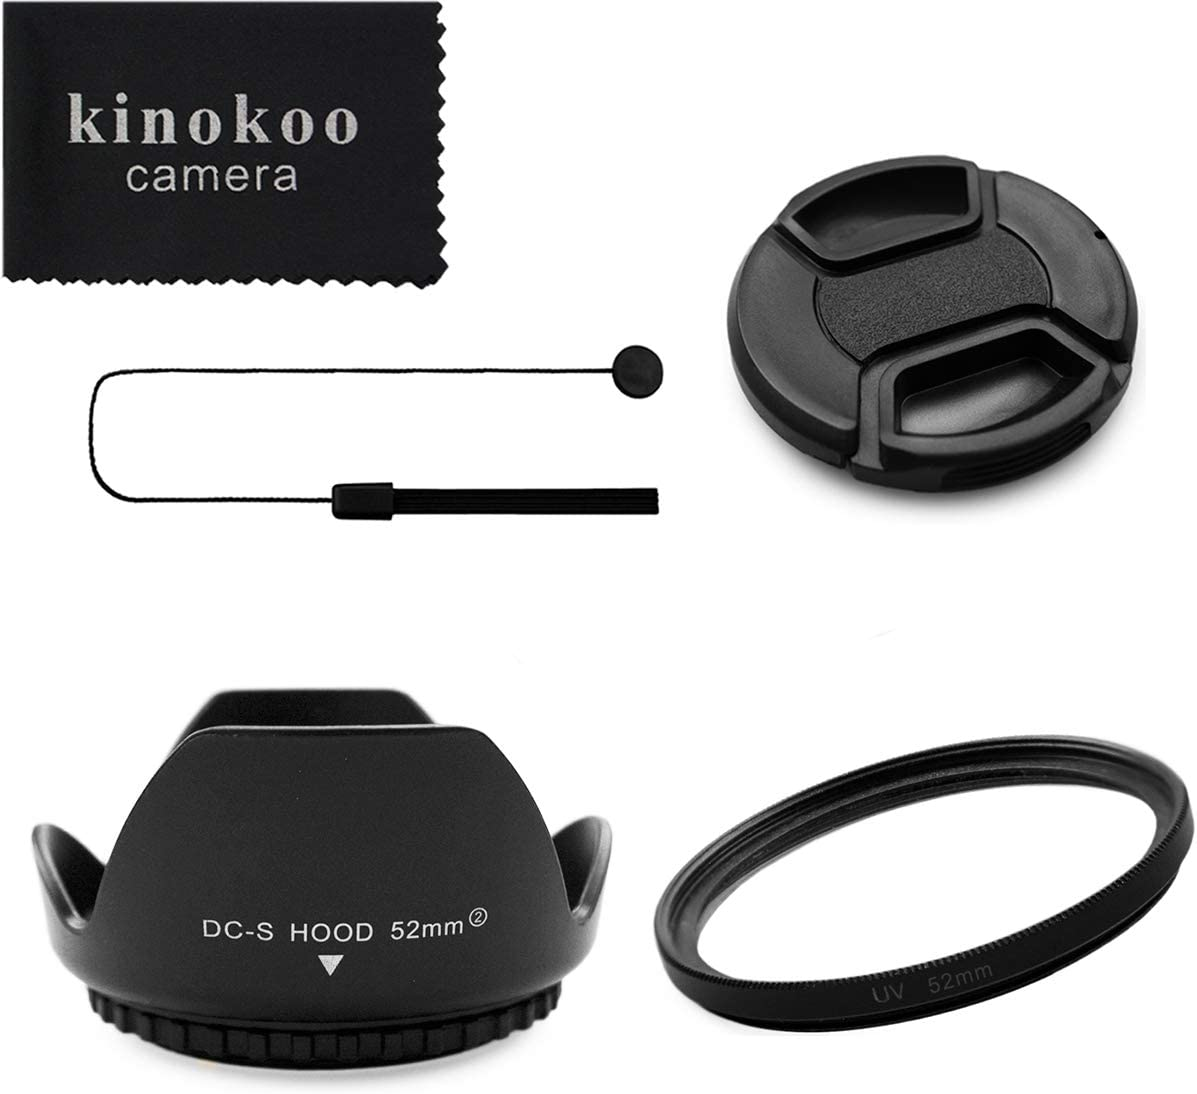 kinokoo 52mm UV Filter Camera Lens Accessories Kit for Fuji X-T30 X-T20 X-T10 X-T100 X-A5, 52mm Reversible Lens Hood+52mm Lens Cap+Lens Cap Leash, Lens Shade Kit(C)